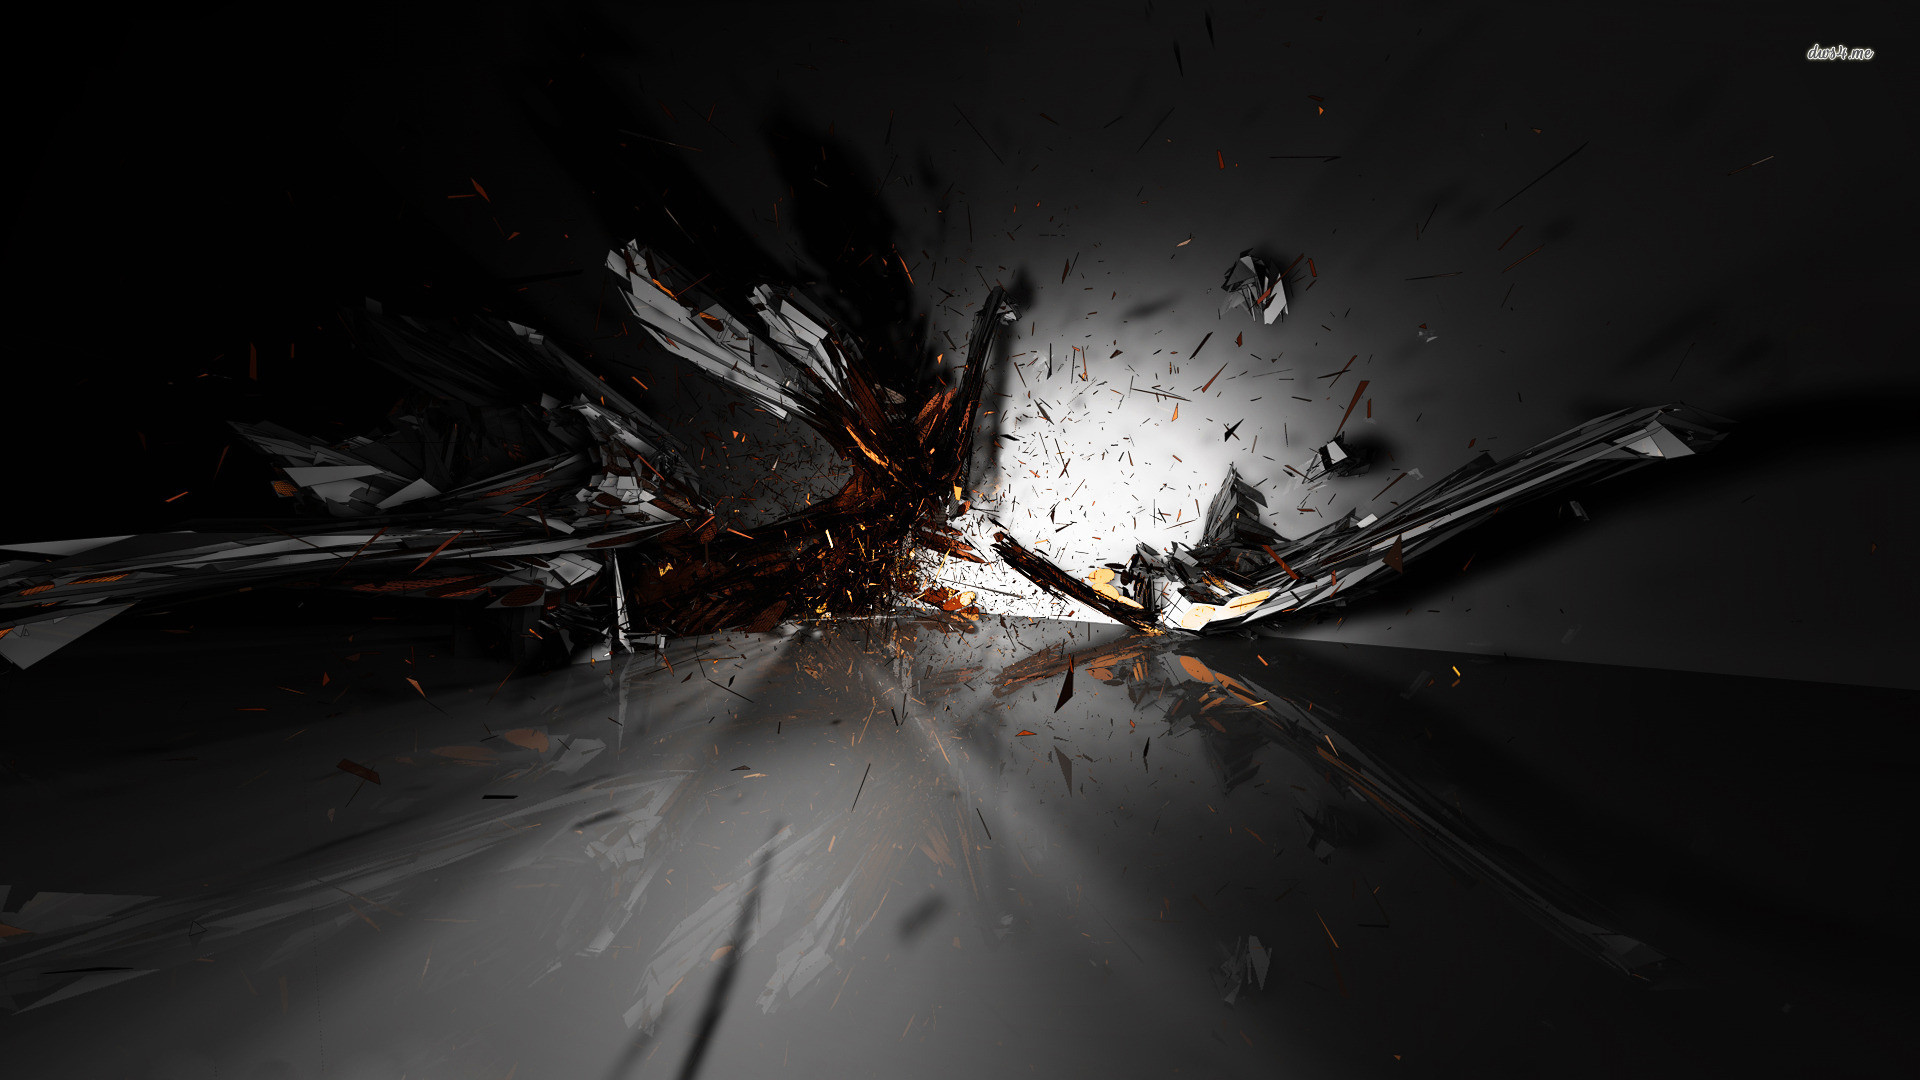 Res: 1920x1080, Explosion Wallpapers Download #K968SLX